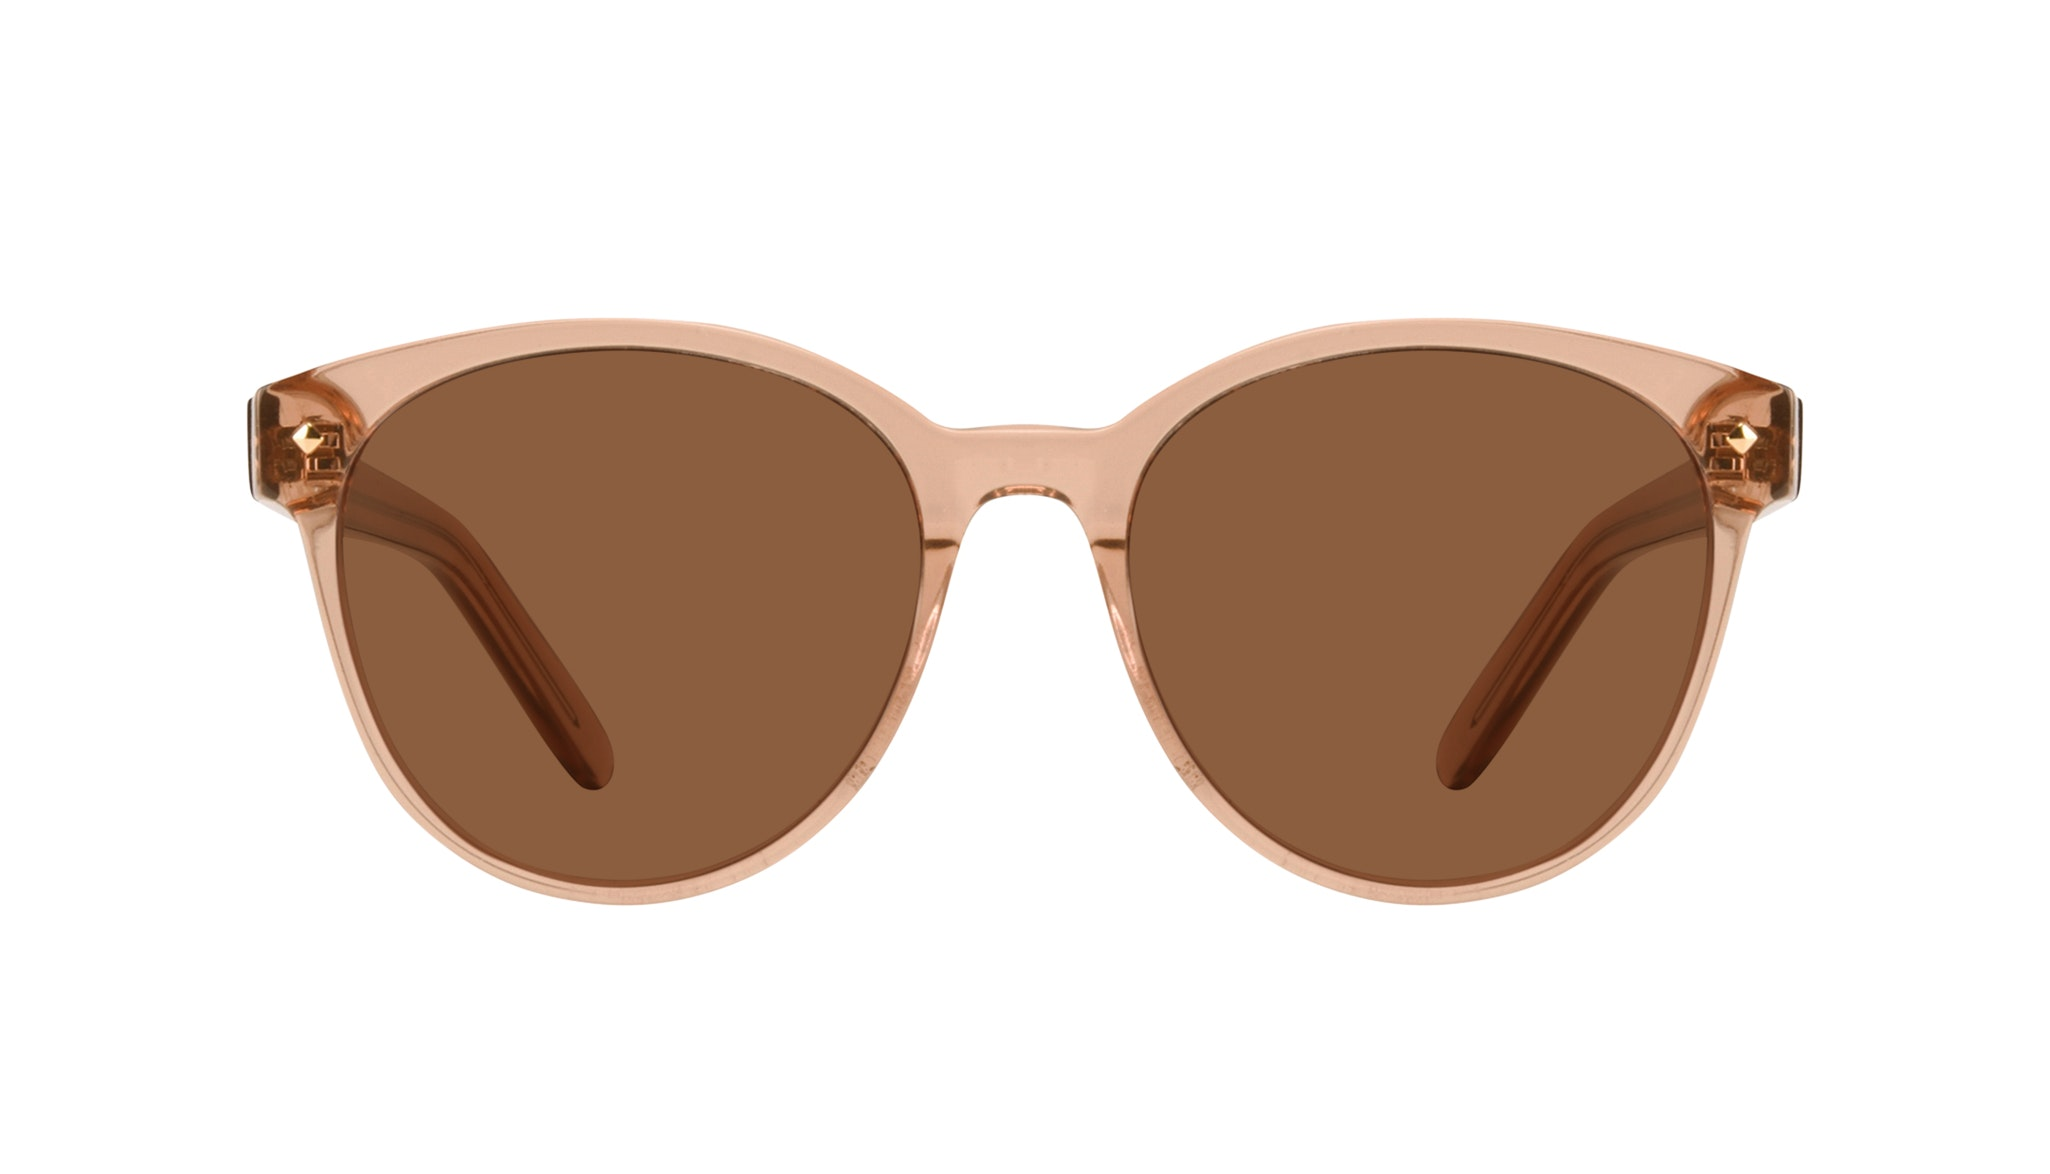 Affordable Fashion Glasses Round Sunglasses Women Eclipse Toffee Front